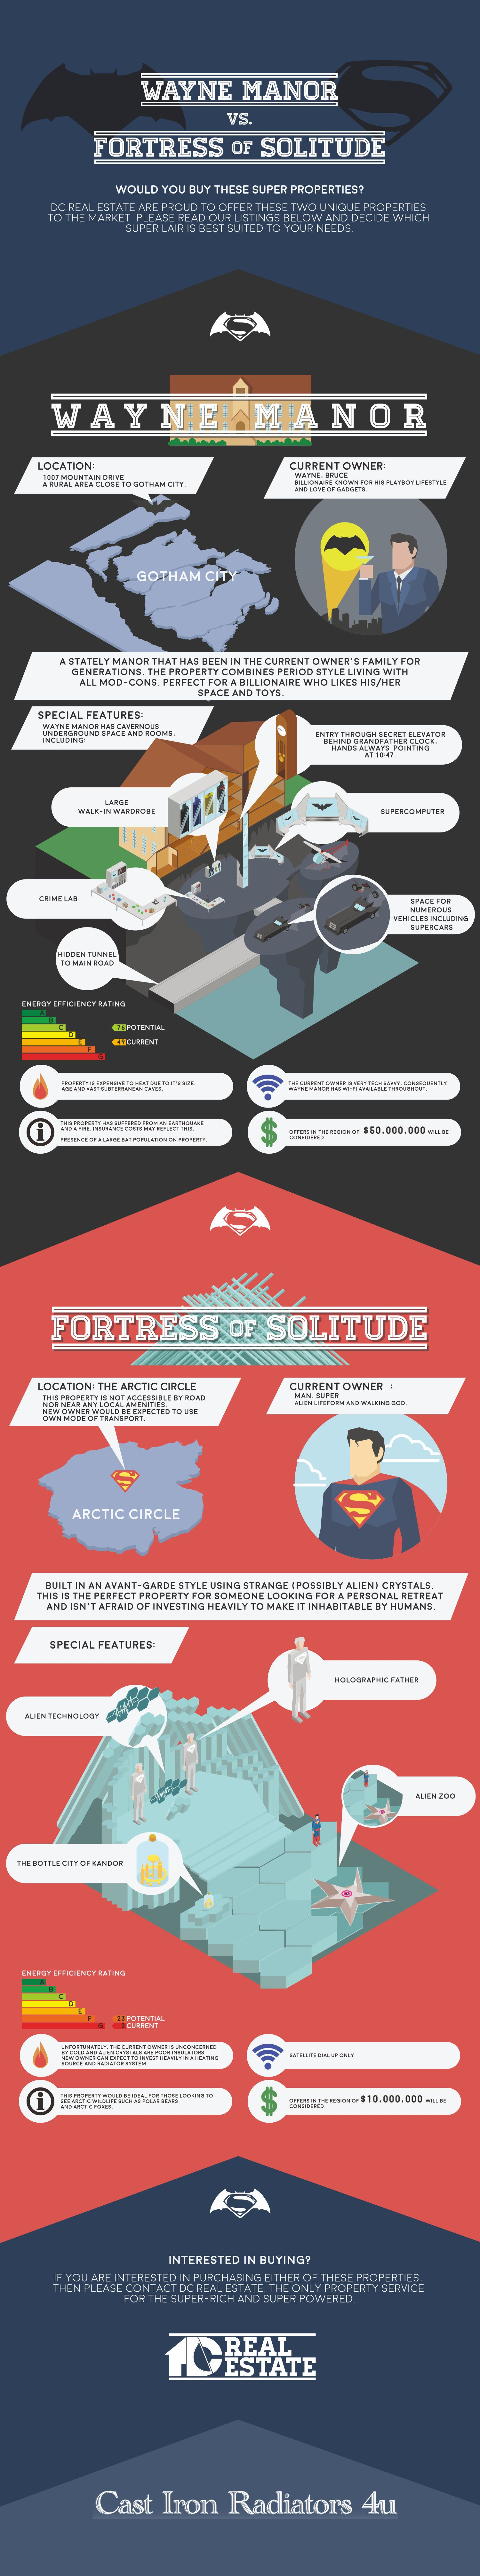 Wayne Manor vs Fortress of Solitude by Cast Iron Radiators 4u